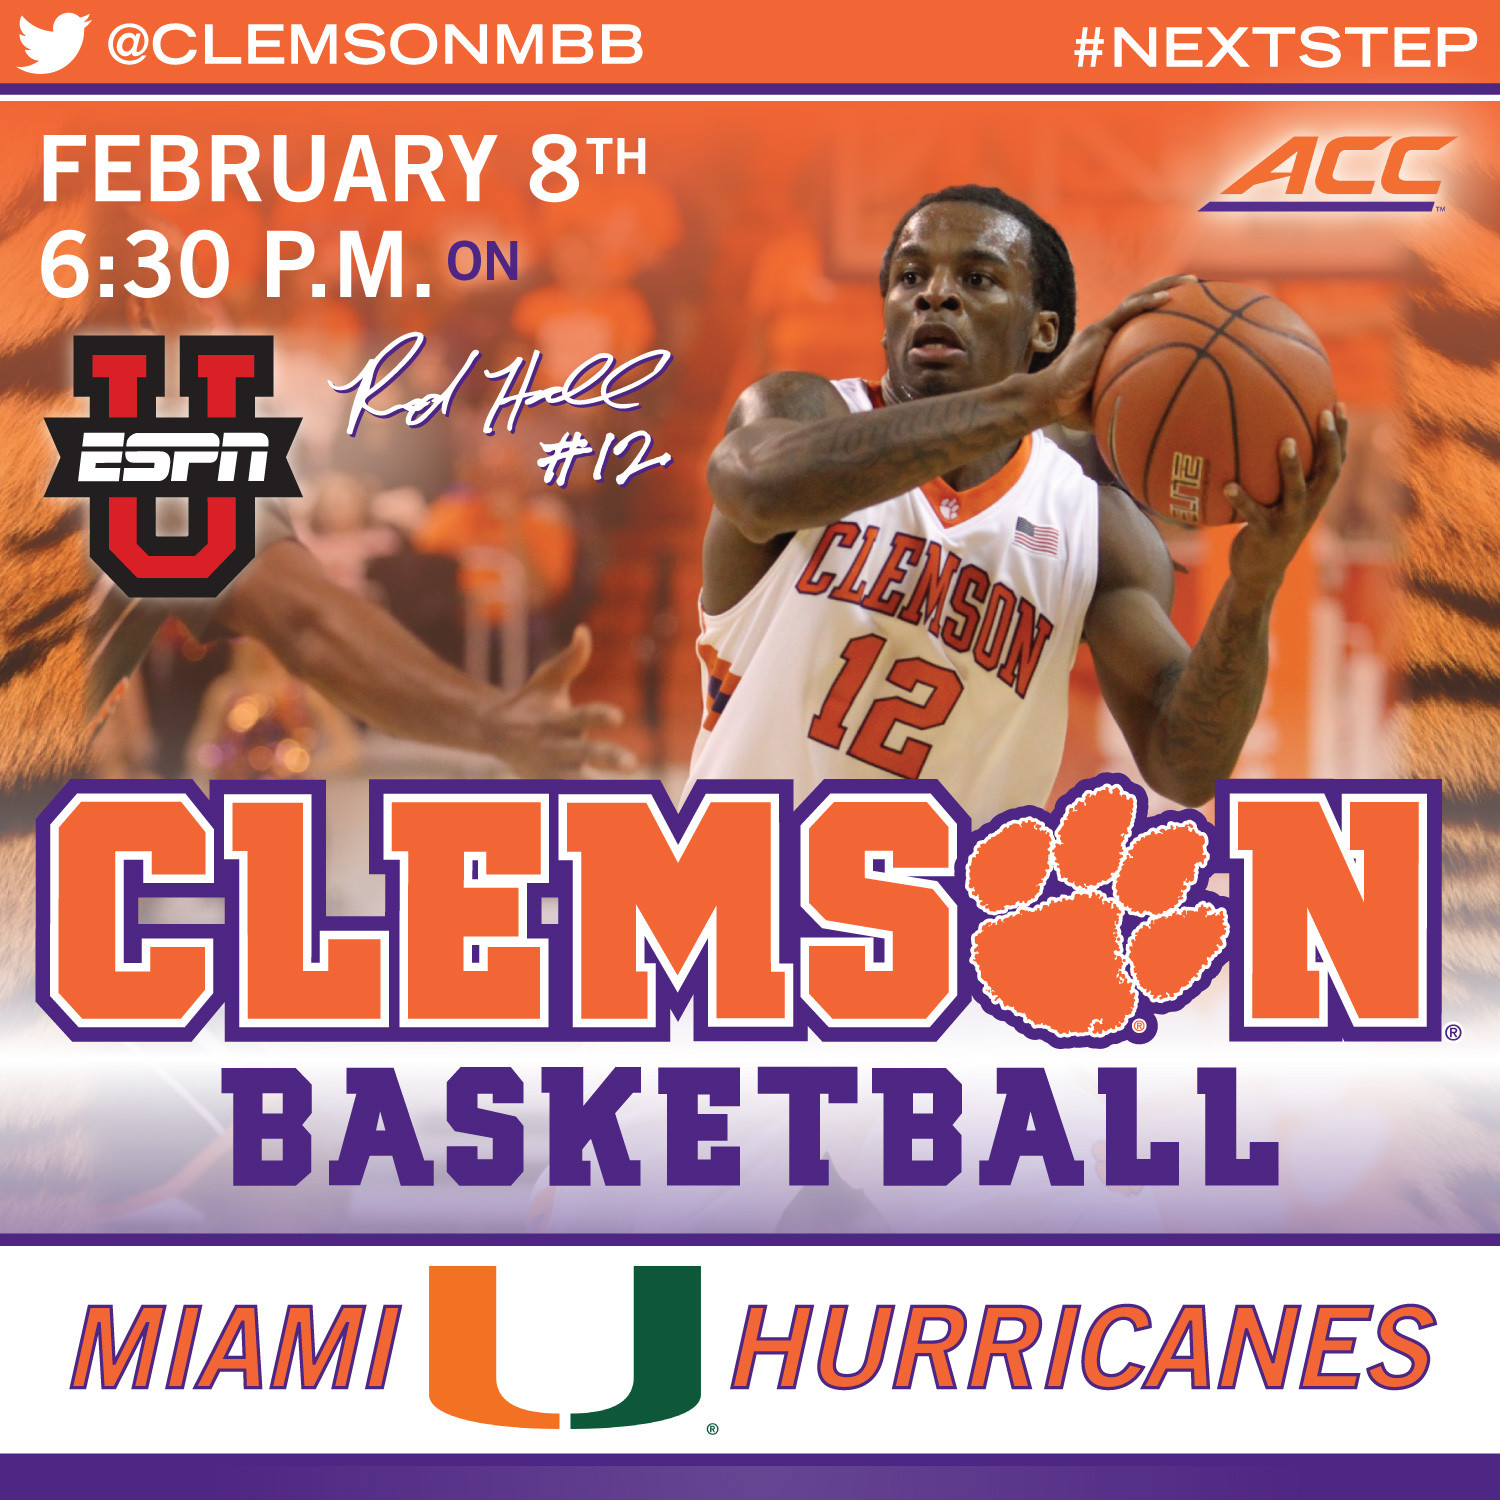 Tigers Travel to Miami Sunday